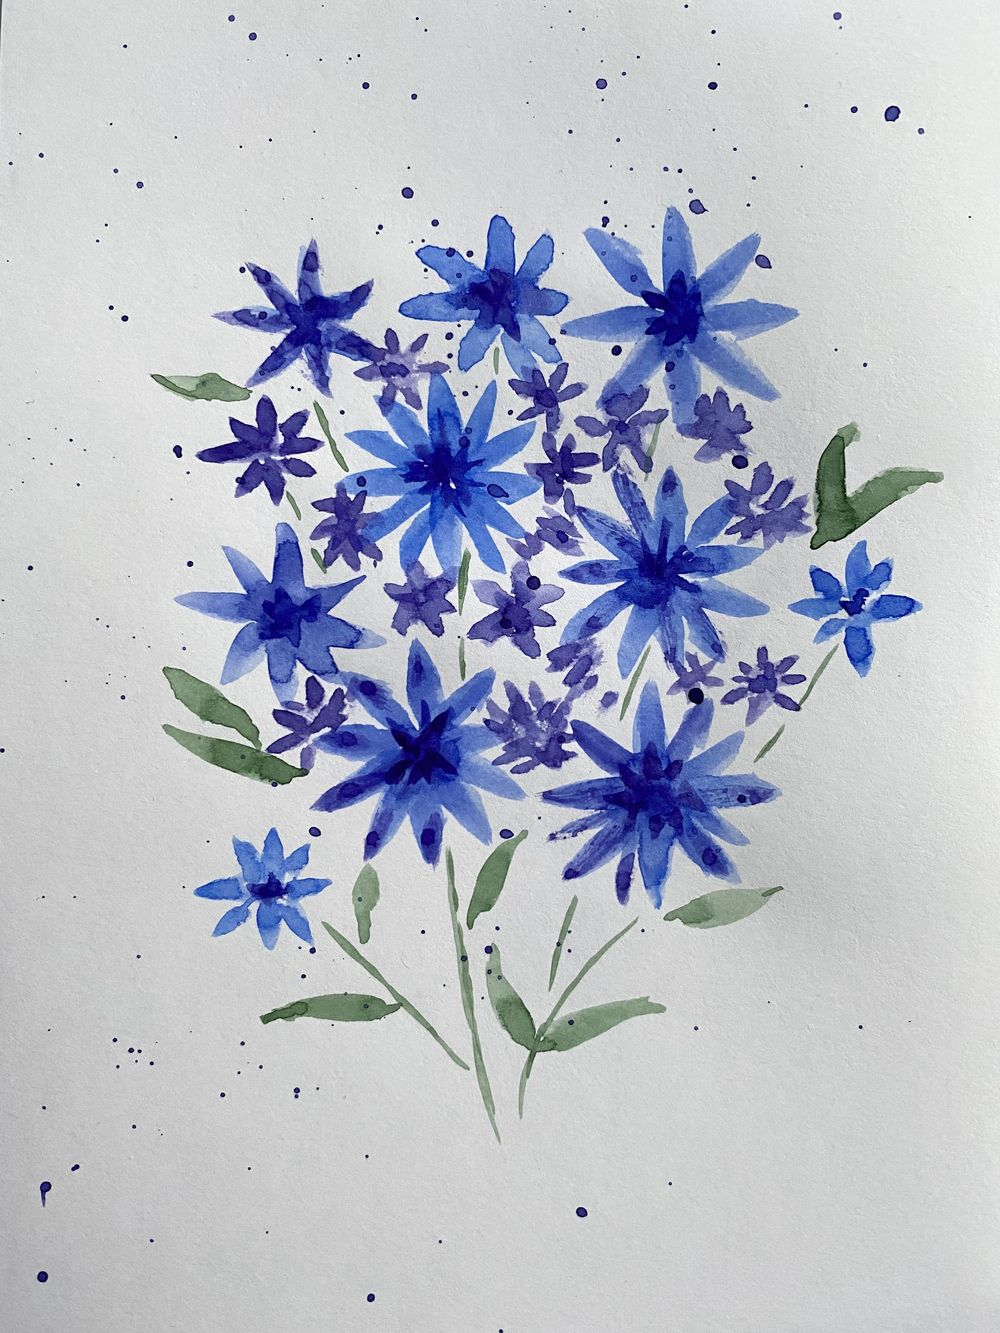 lavender and blue flowers - image 2 - student project